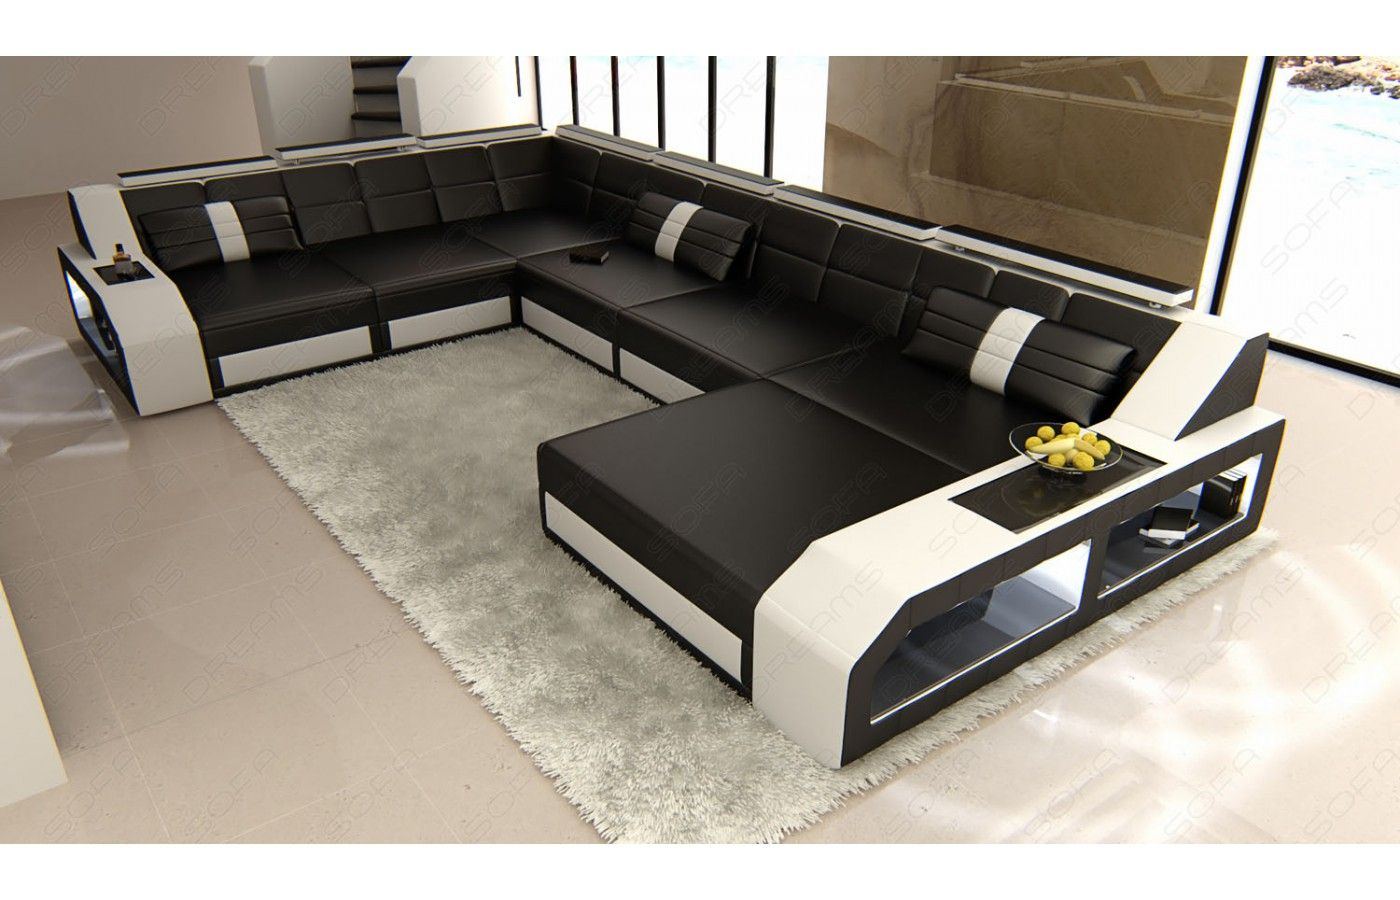 xxl wohnlandschaft matera leder wohnlandschaft sofa und led. Black Bedroom Furniture Sets. Home Design Ideas